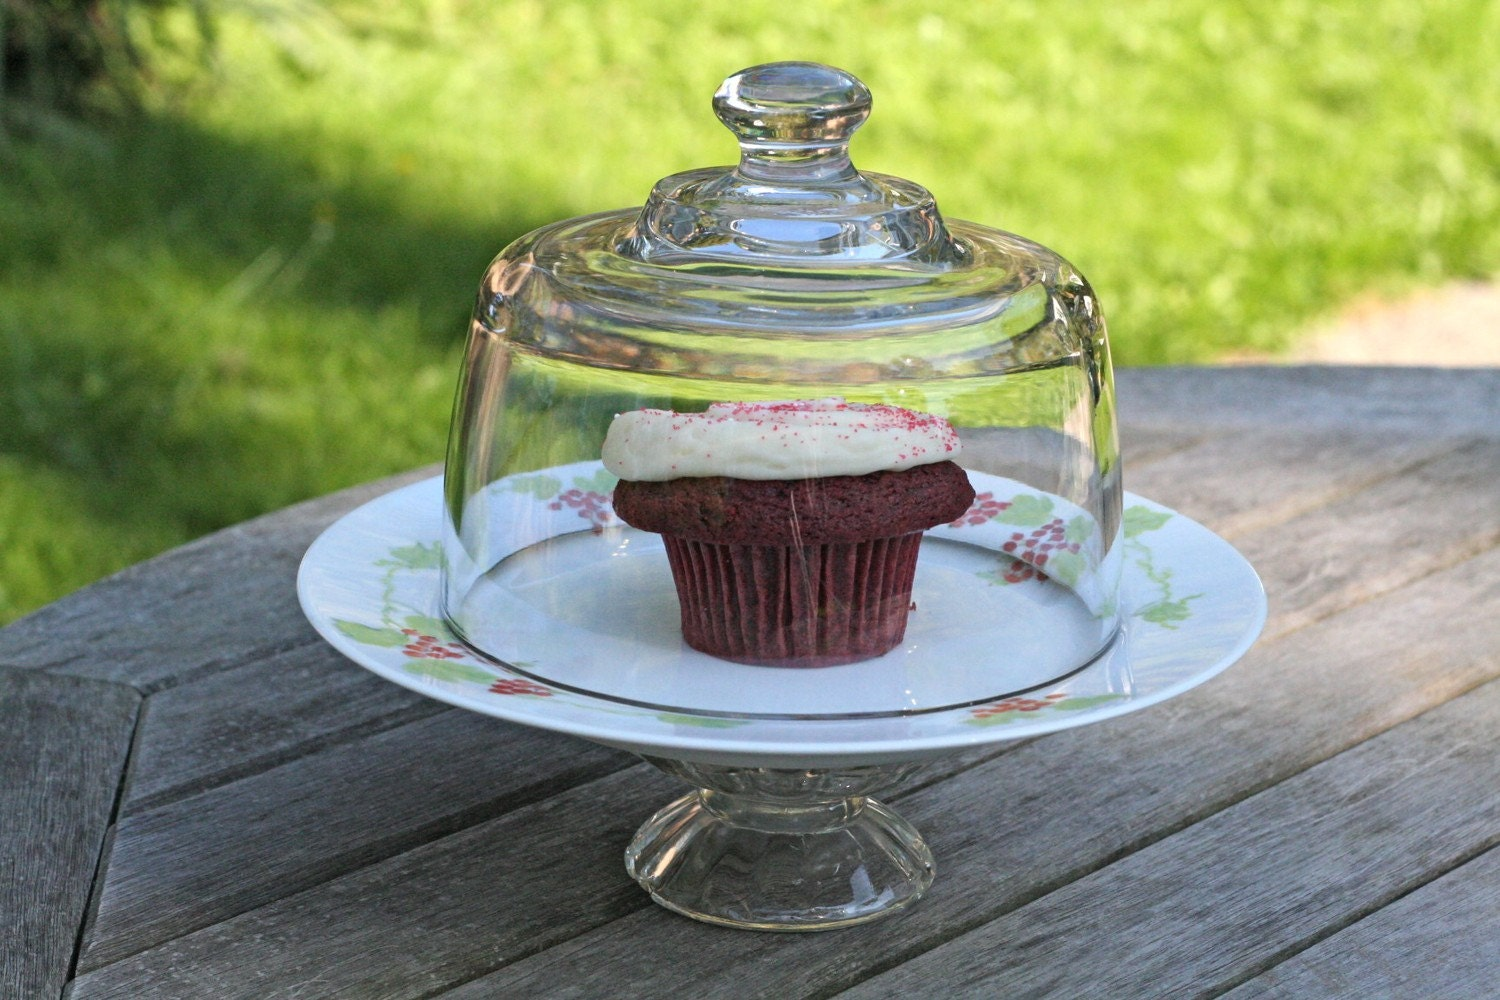 Cake stand with dome, cupcake stand or dessert display pedestal- Berry Sweet